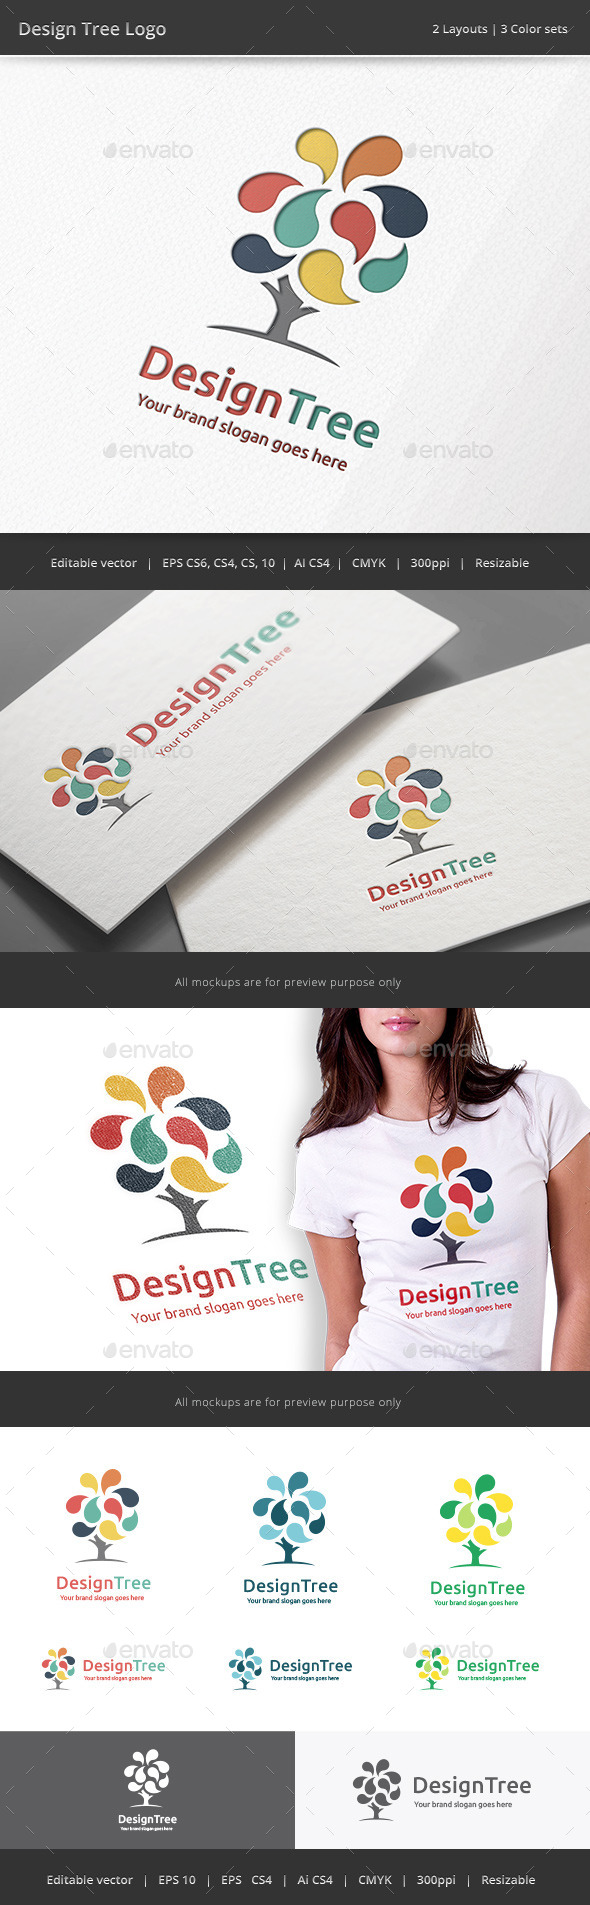 GraphicRiver Design Tree Logo 11303897